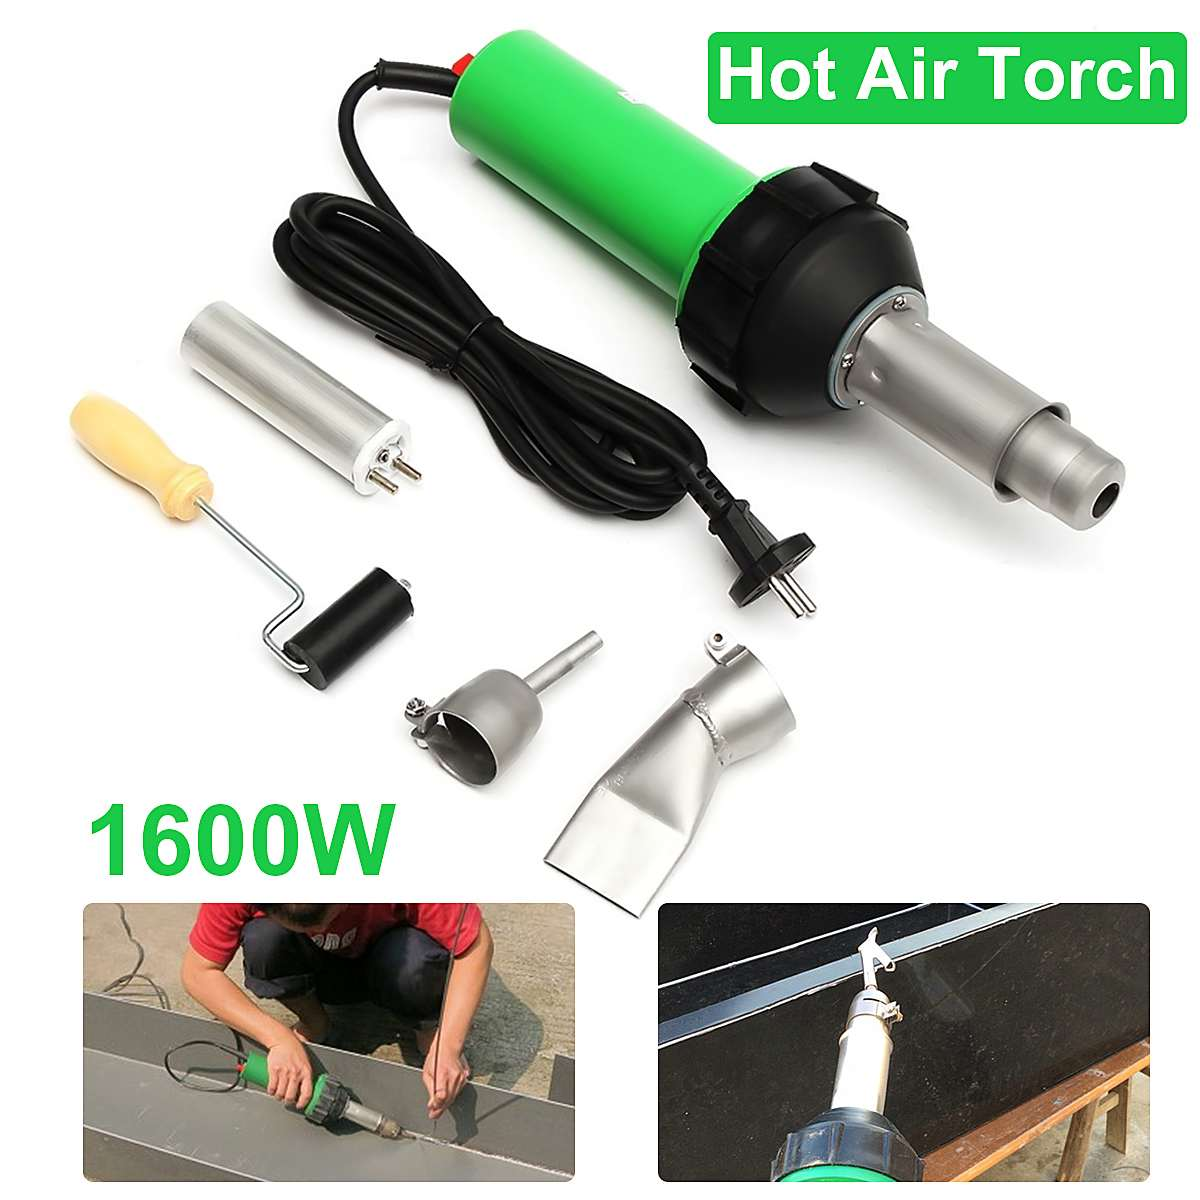 220V 1600W 50Hz Electronic Heat Hot Air Torch Plastic Welding Welders Torch + Nozzle + Pressure Roller 3000Pa